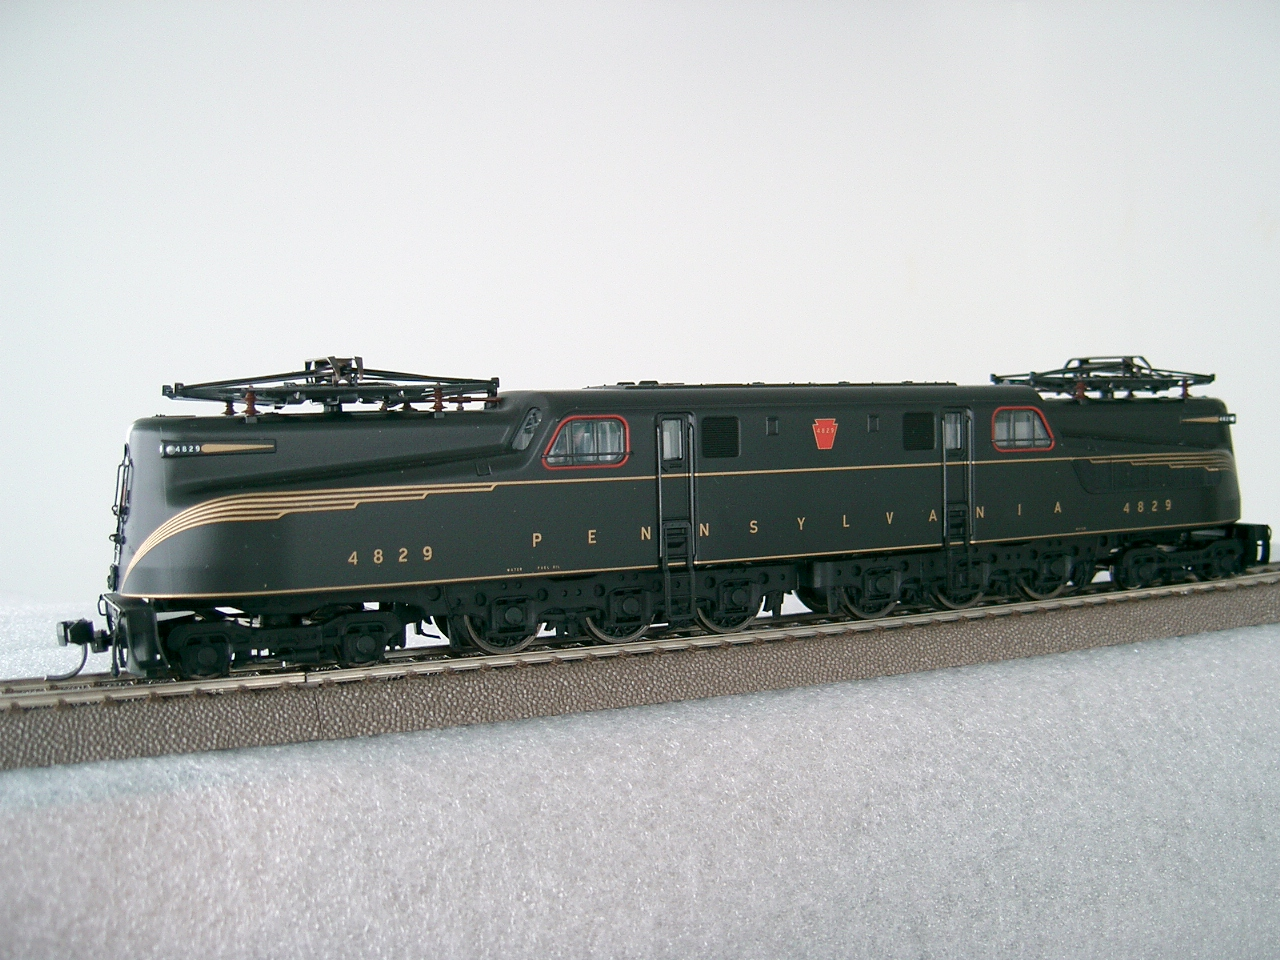 Trix 22811 - PRR class GG-1, Brunswick Green, feathered golden pin-stripes, No.4829, RP 25 wheels.01